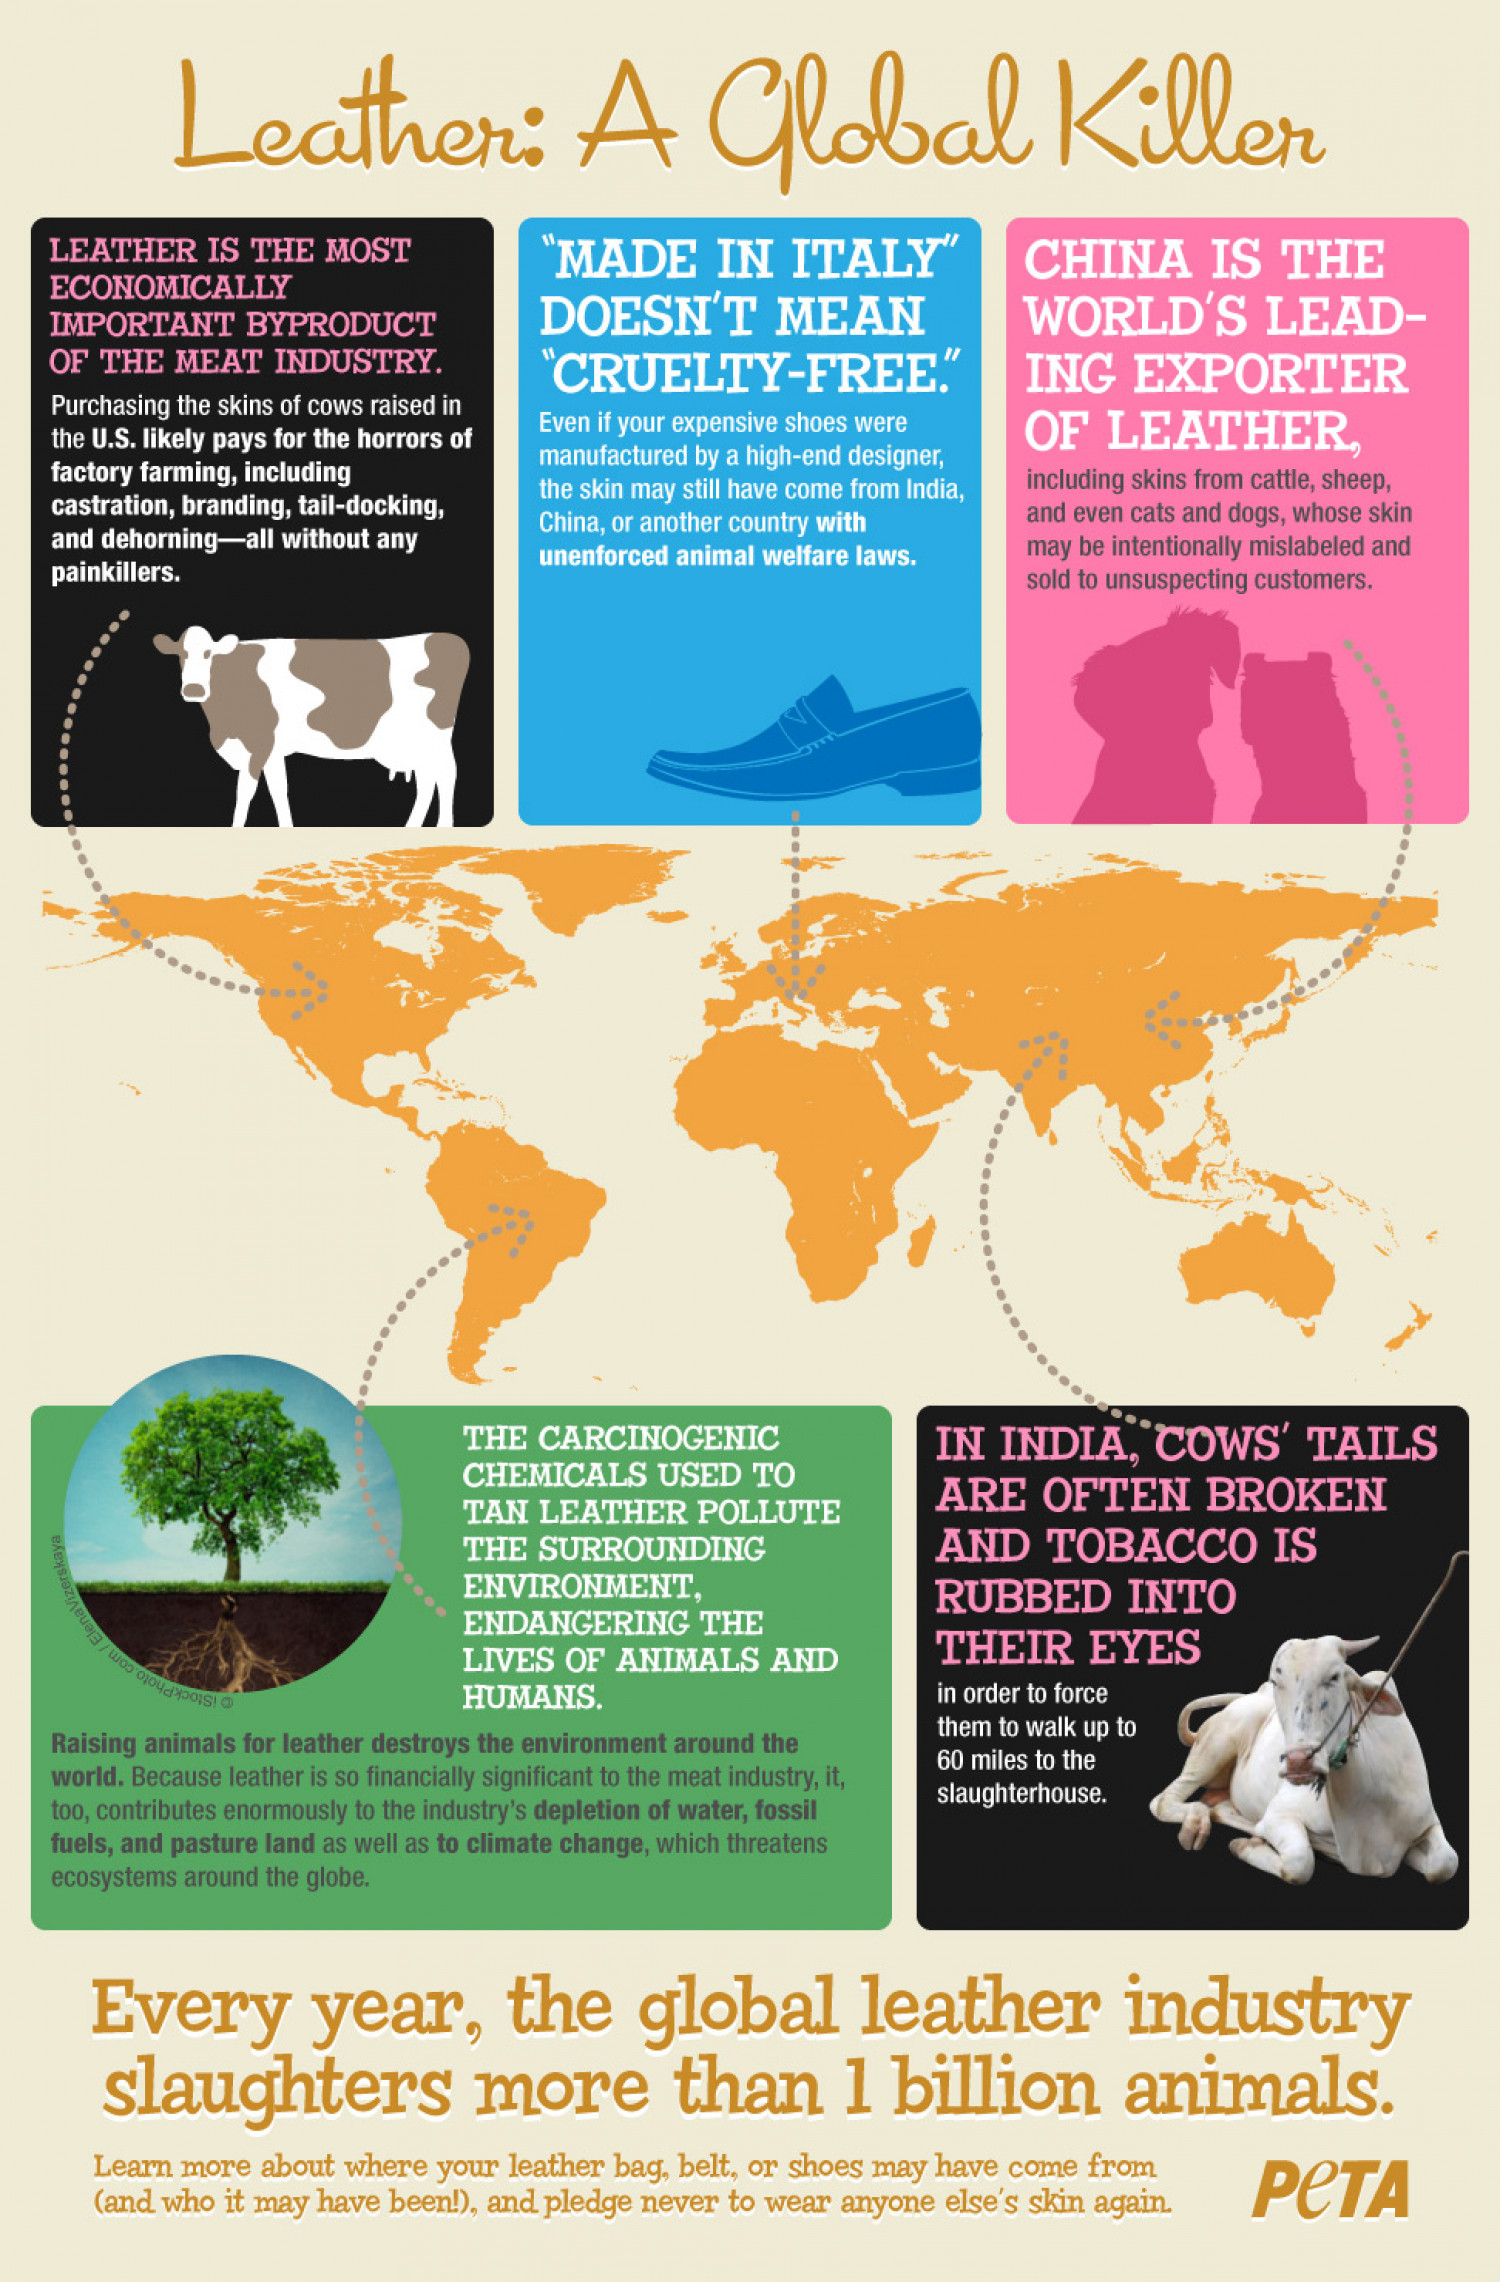 Leather: A Global Killer Infographic